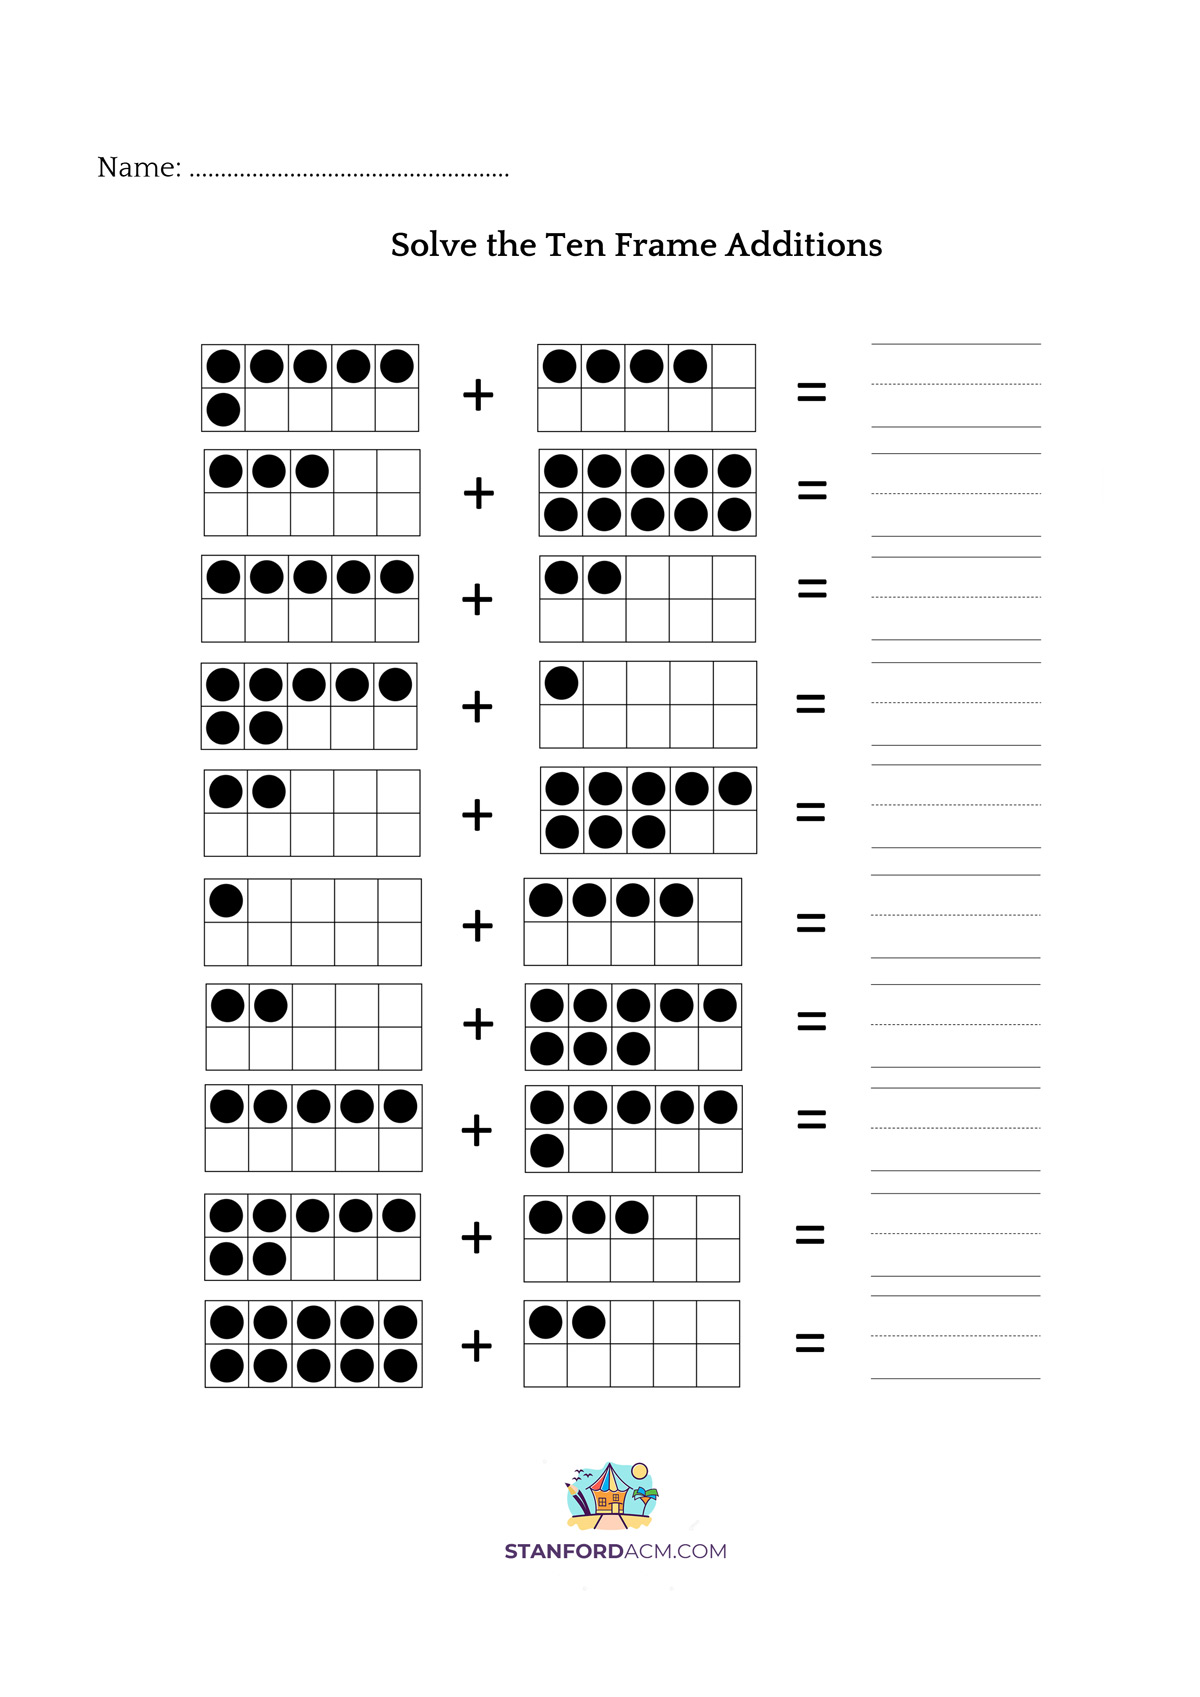 hight resolution of 10 Frame Addition Worksheet   Printable Worksheets and Activities for  Teachers